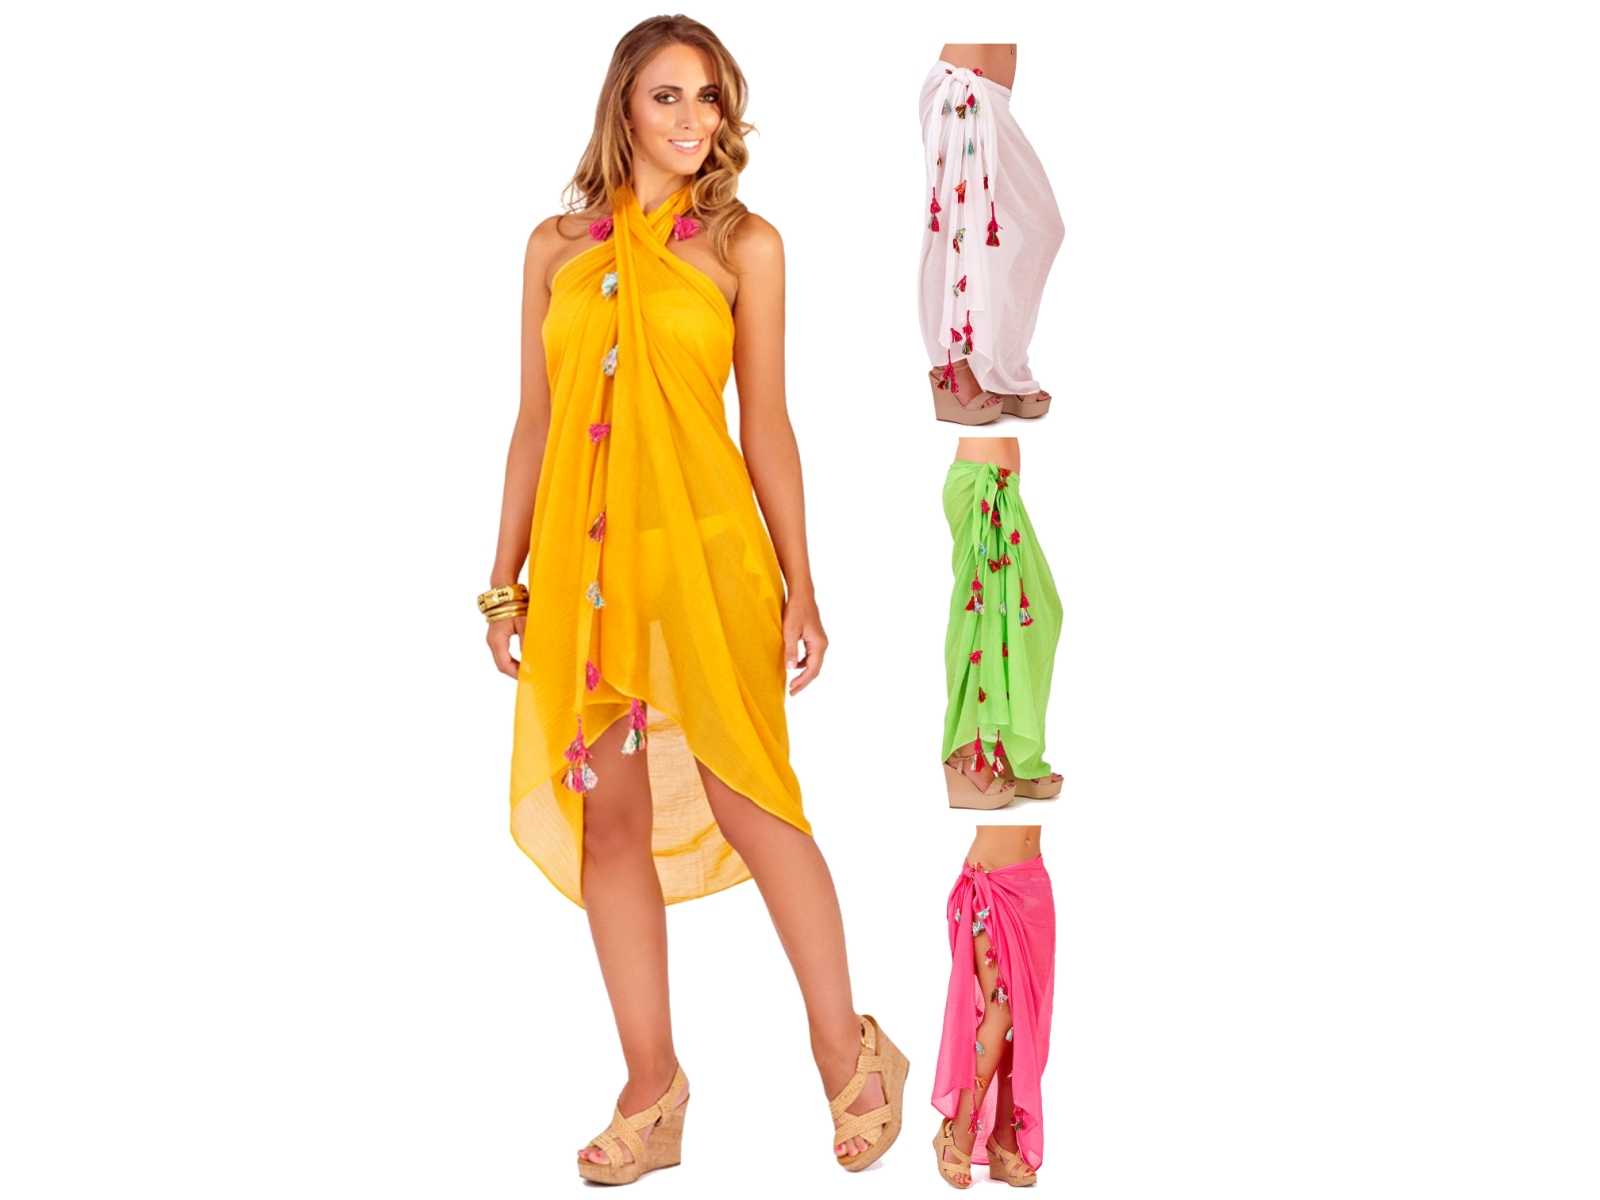 WOMENS TASSLE SARONG BEACHWEAR DRESS WRAP BEACH COVER UP COTTON LADIES ONE SIZE